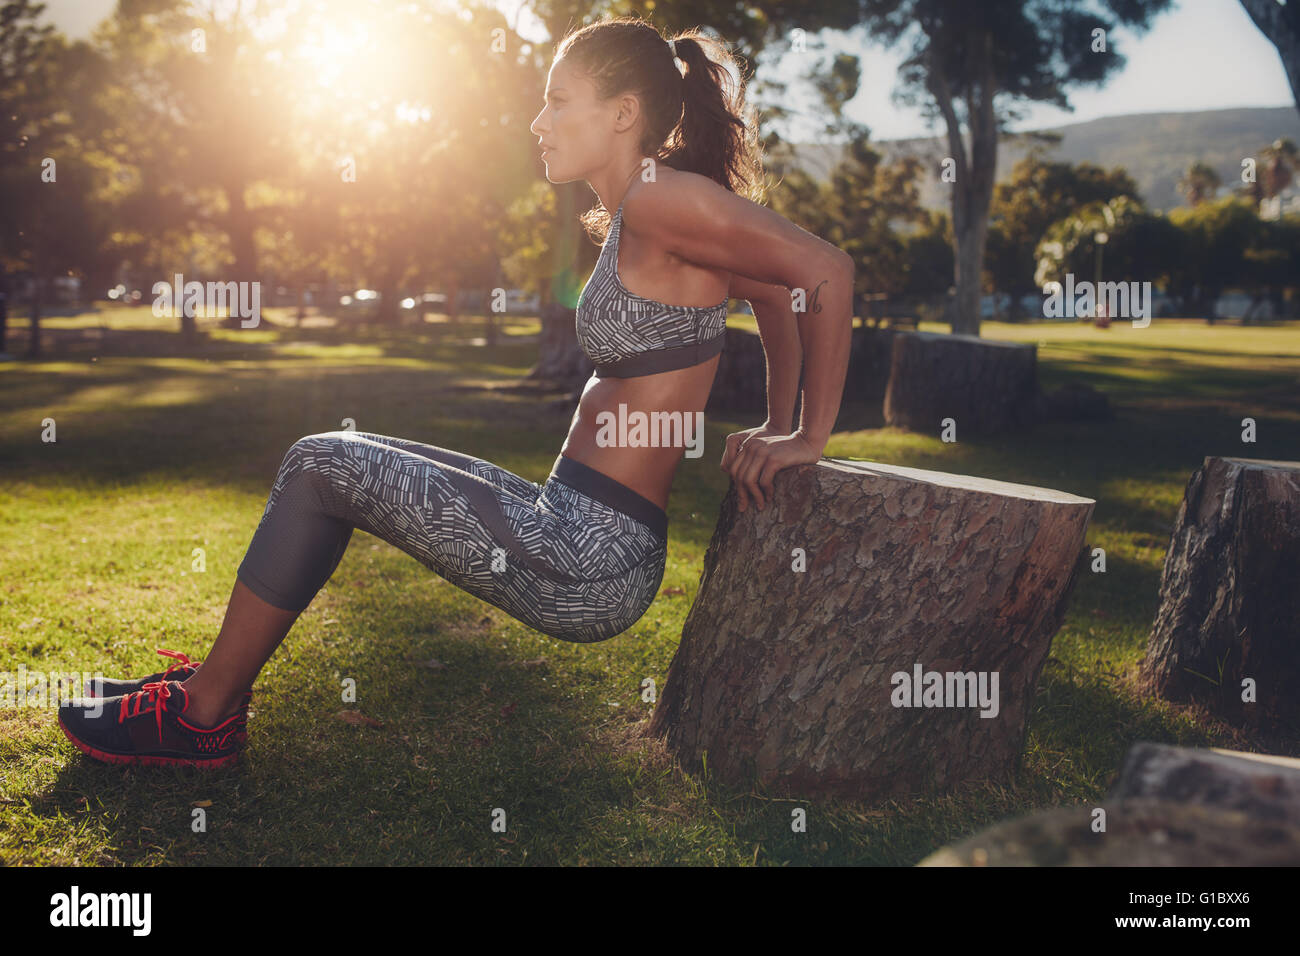 Young woman practicing push ups in a park. Side view shot of muscular female exercising with a log. - Stock Image